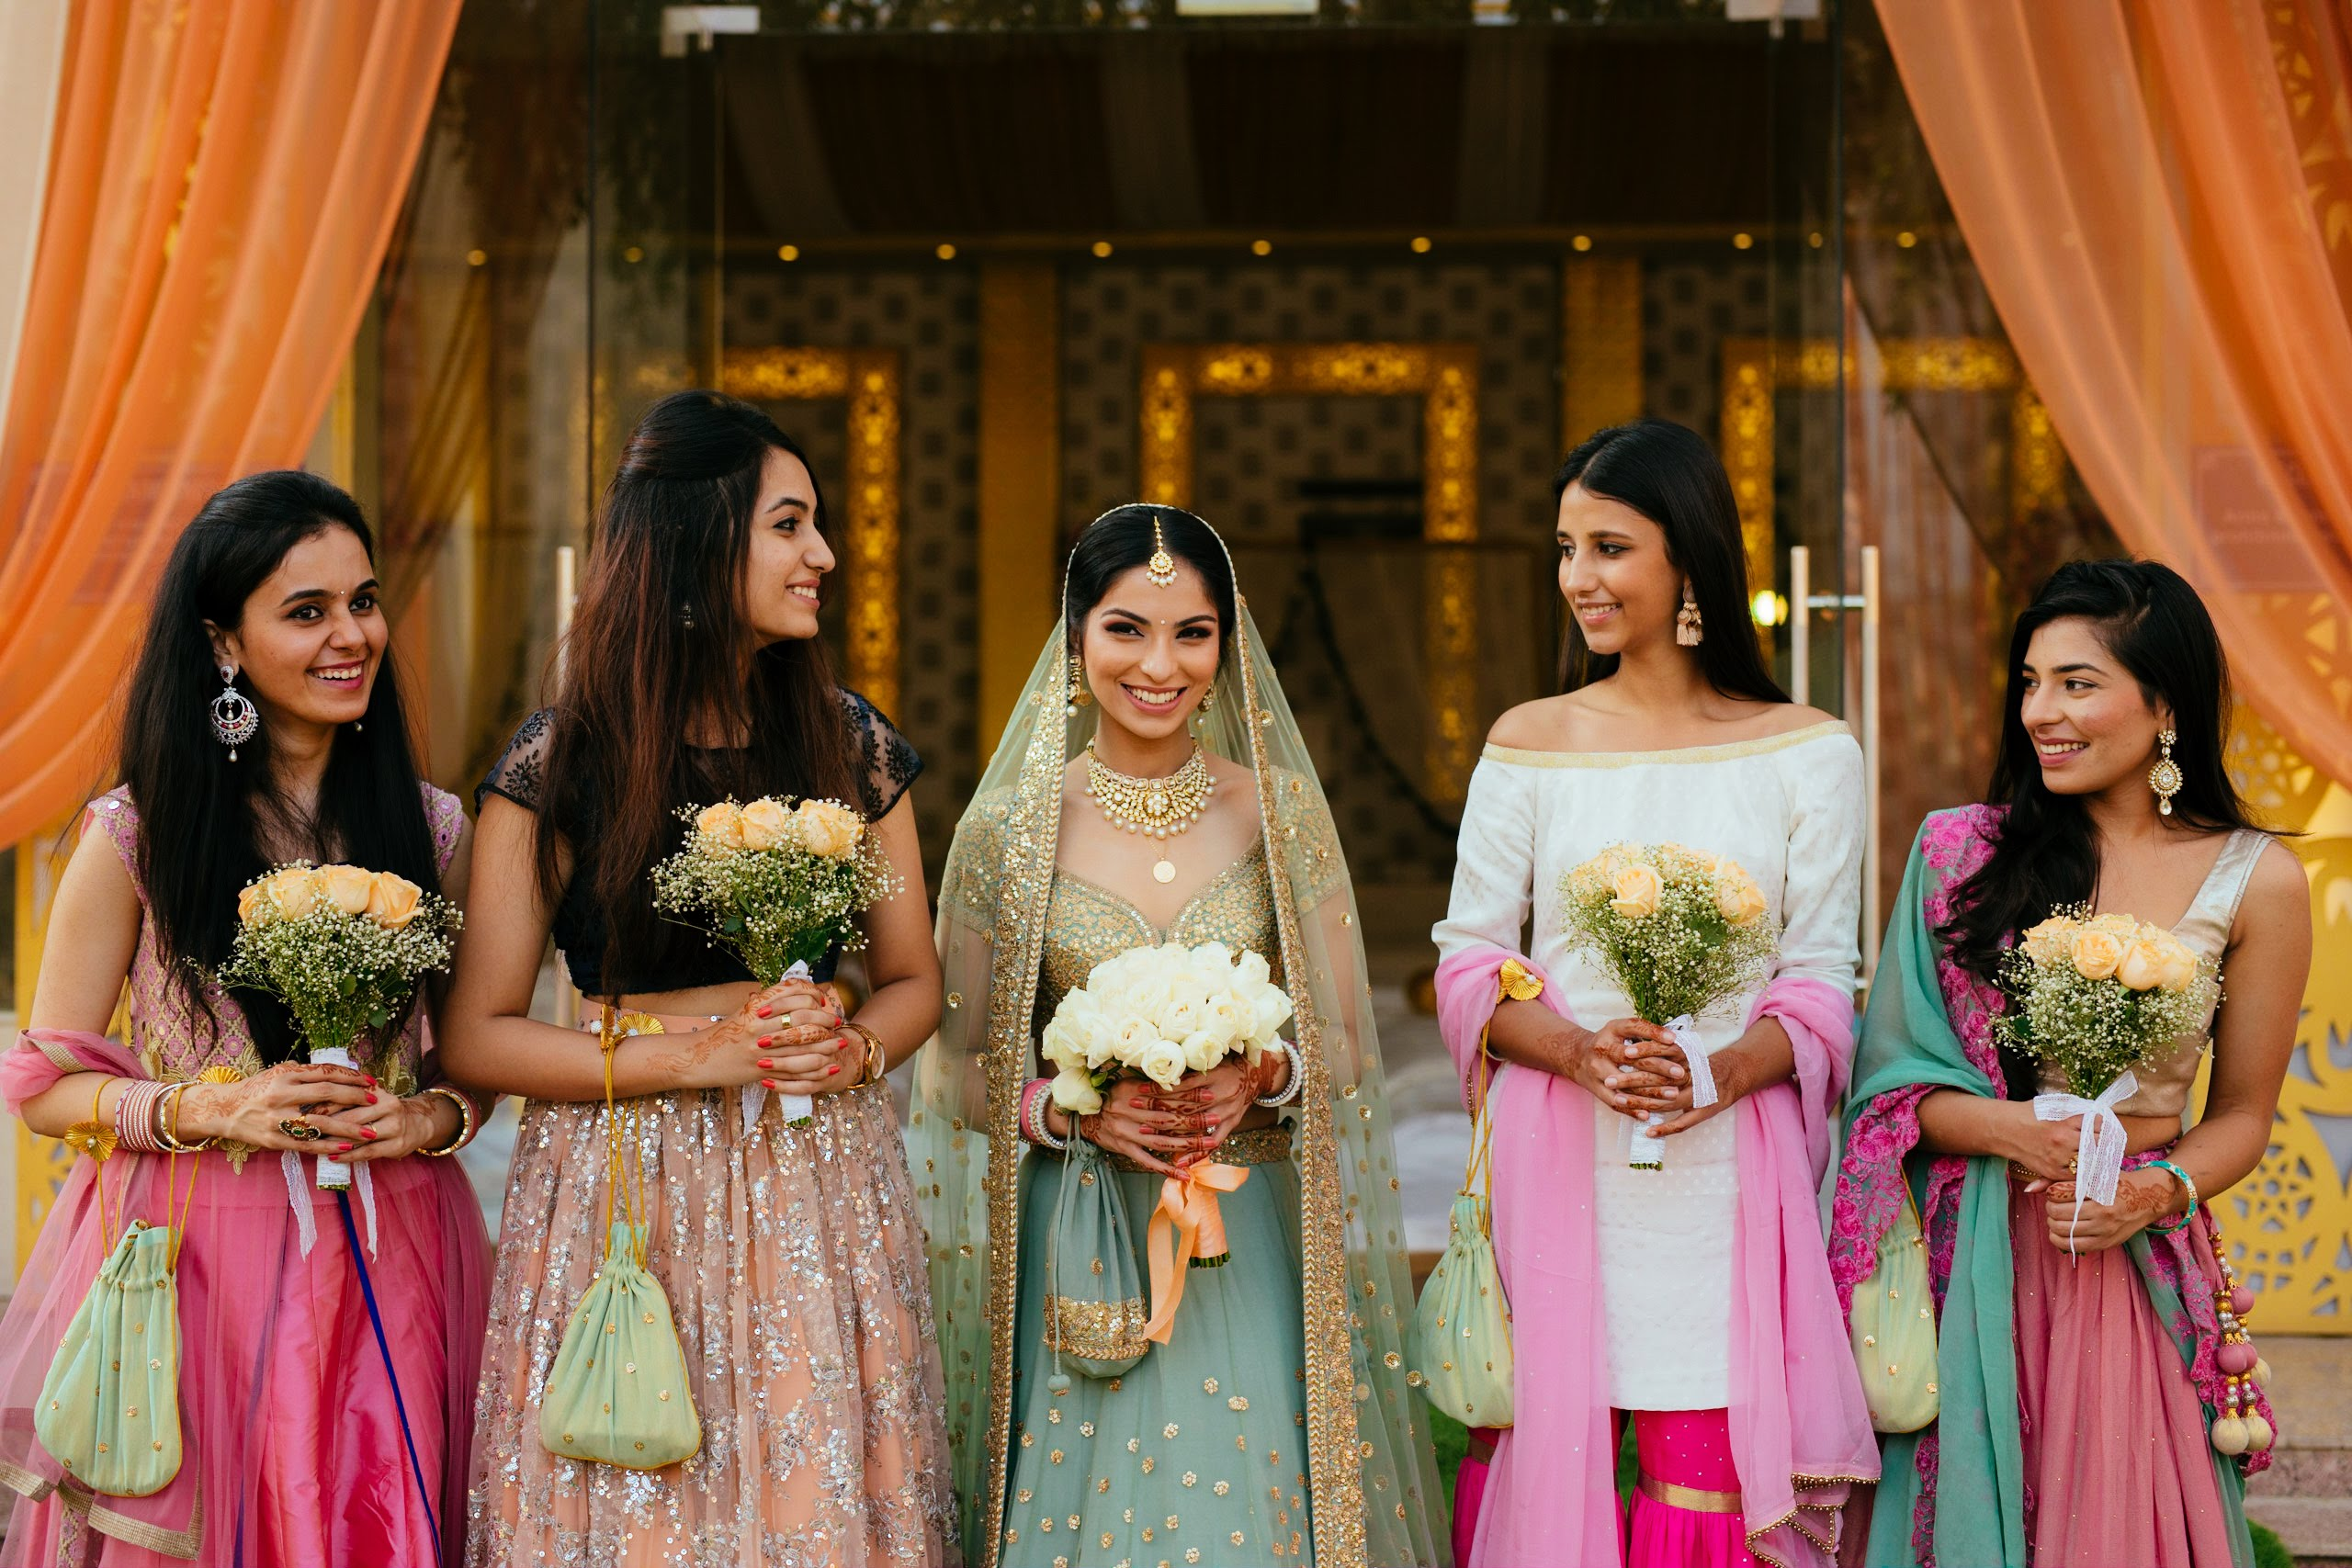 The Bride with her Bridesmaid- Wedding Photography